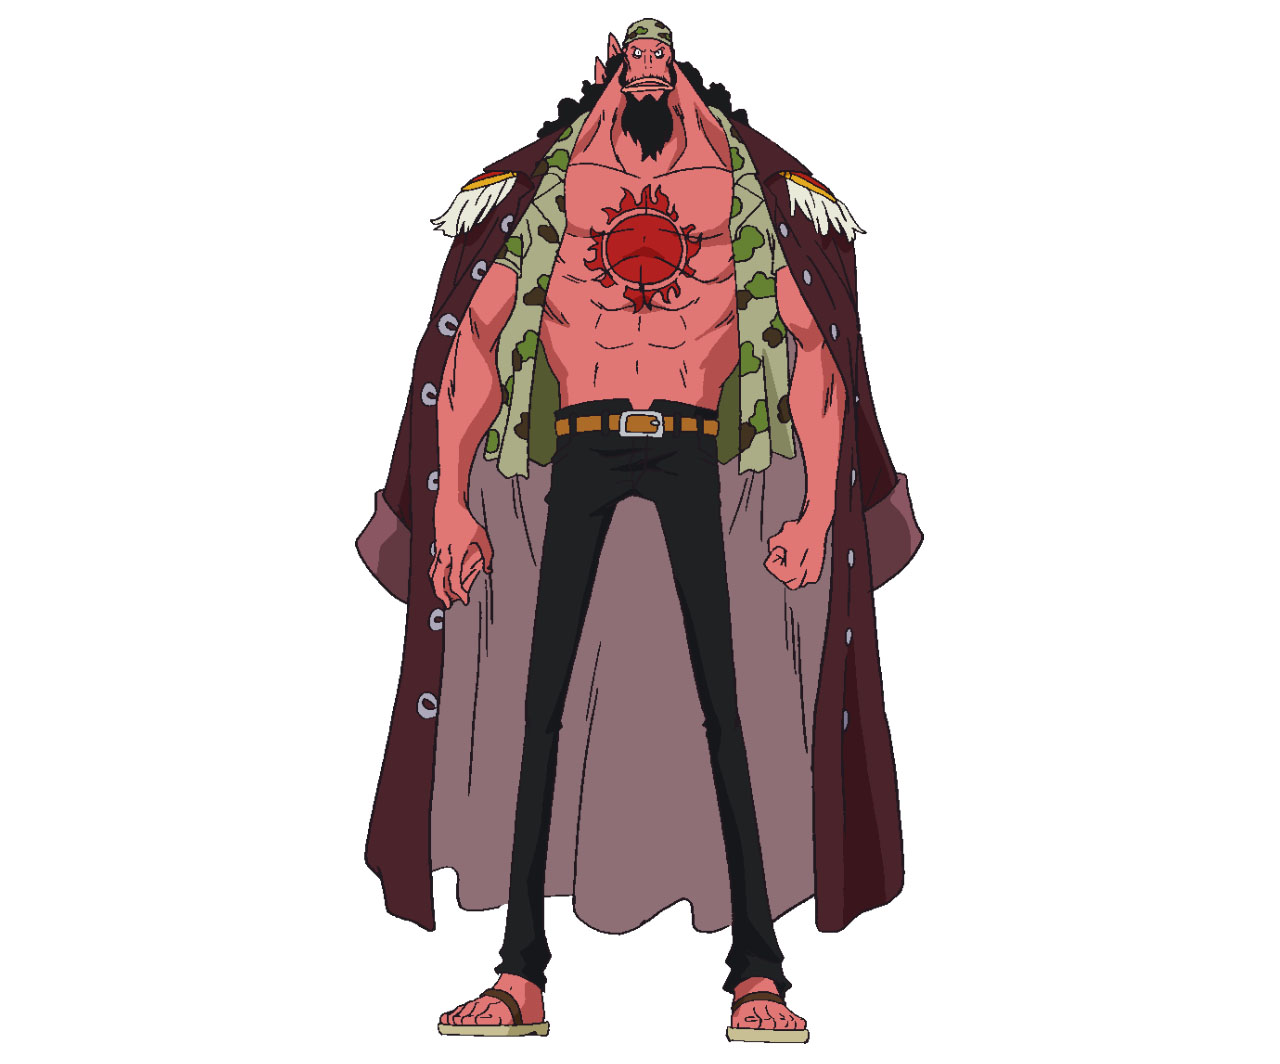 https://one-piece.com/assets/images/anime/character/data/Fisher_Tiger/img.jpg